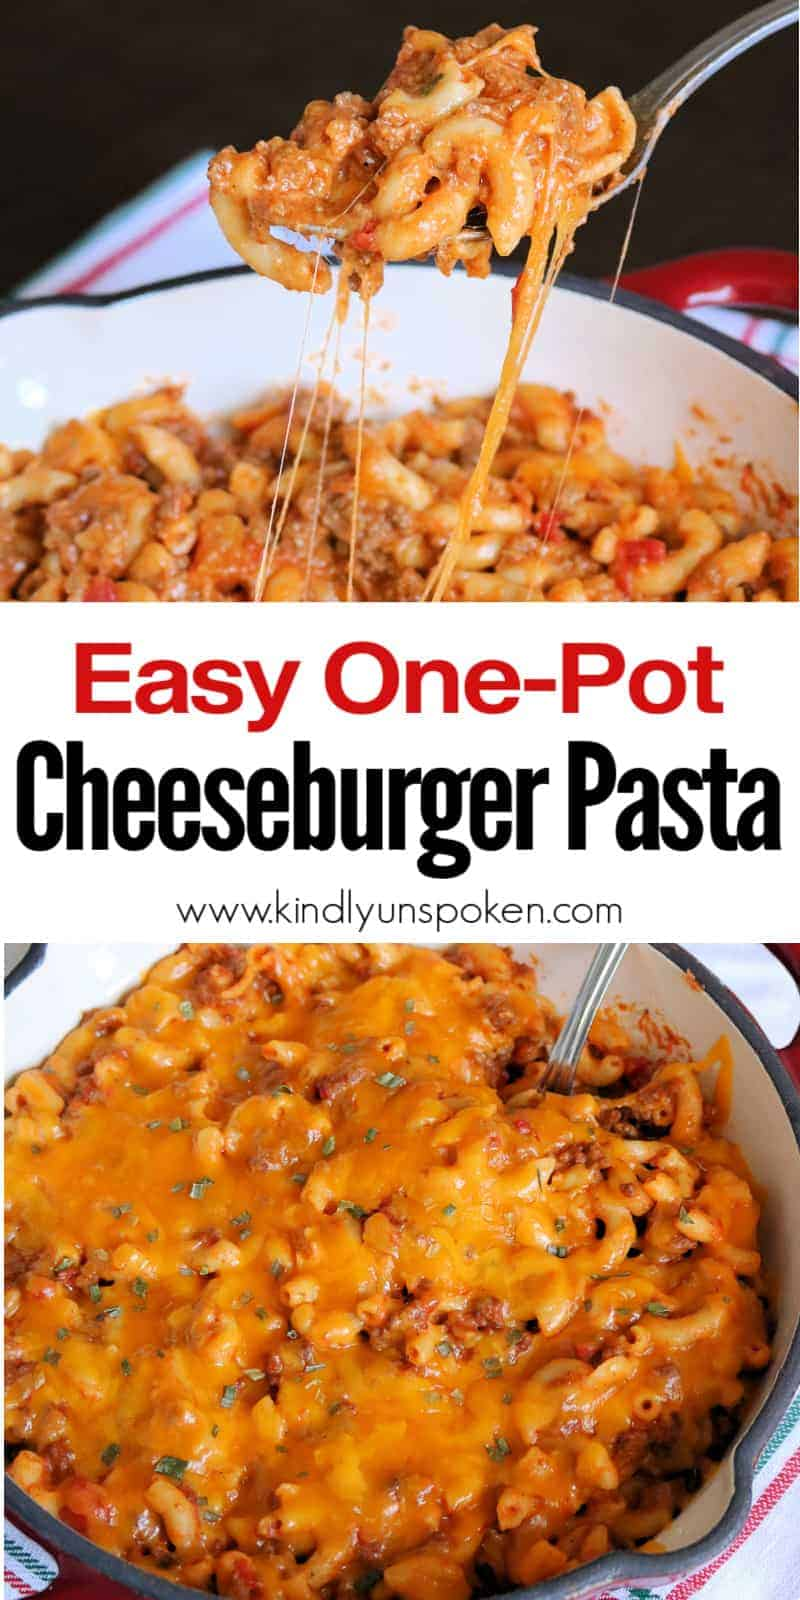 Try my Easy Cheeseburger Pasta Recipe for a delicious one pot dinner this week! This Cheeseburger Pasta is made quick and easy on the stove top with ground beef, cheddar cheese, tomato sauce, ketchup, and mustard, and tastes even better than Hamburger Helper! #cheeseburgerpasta #pastarecipe #onepotrecipe